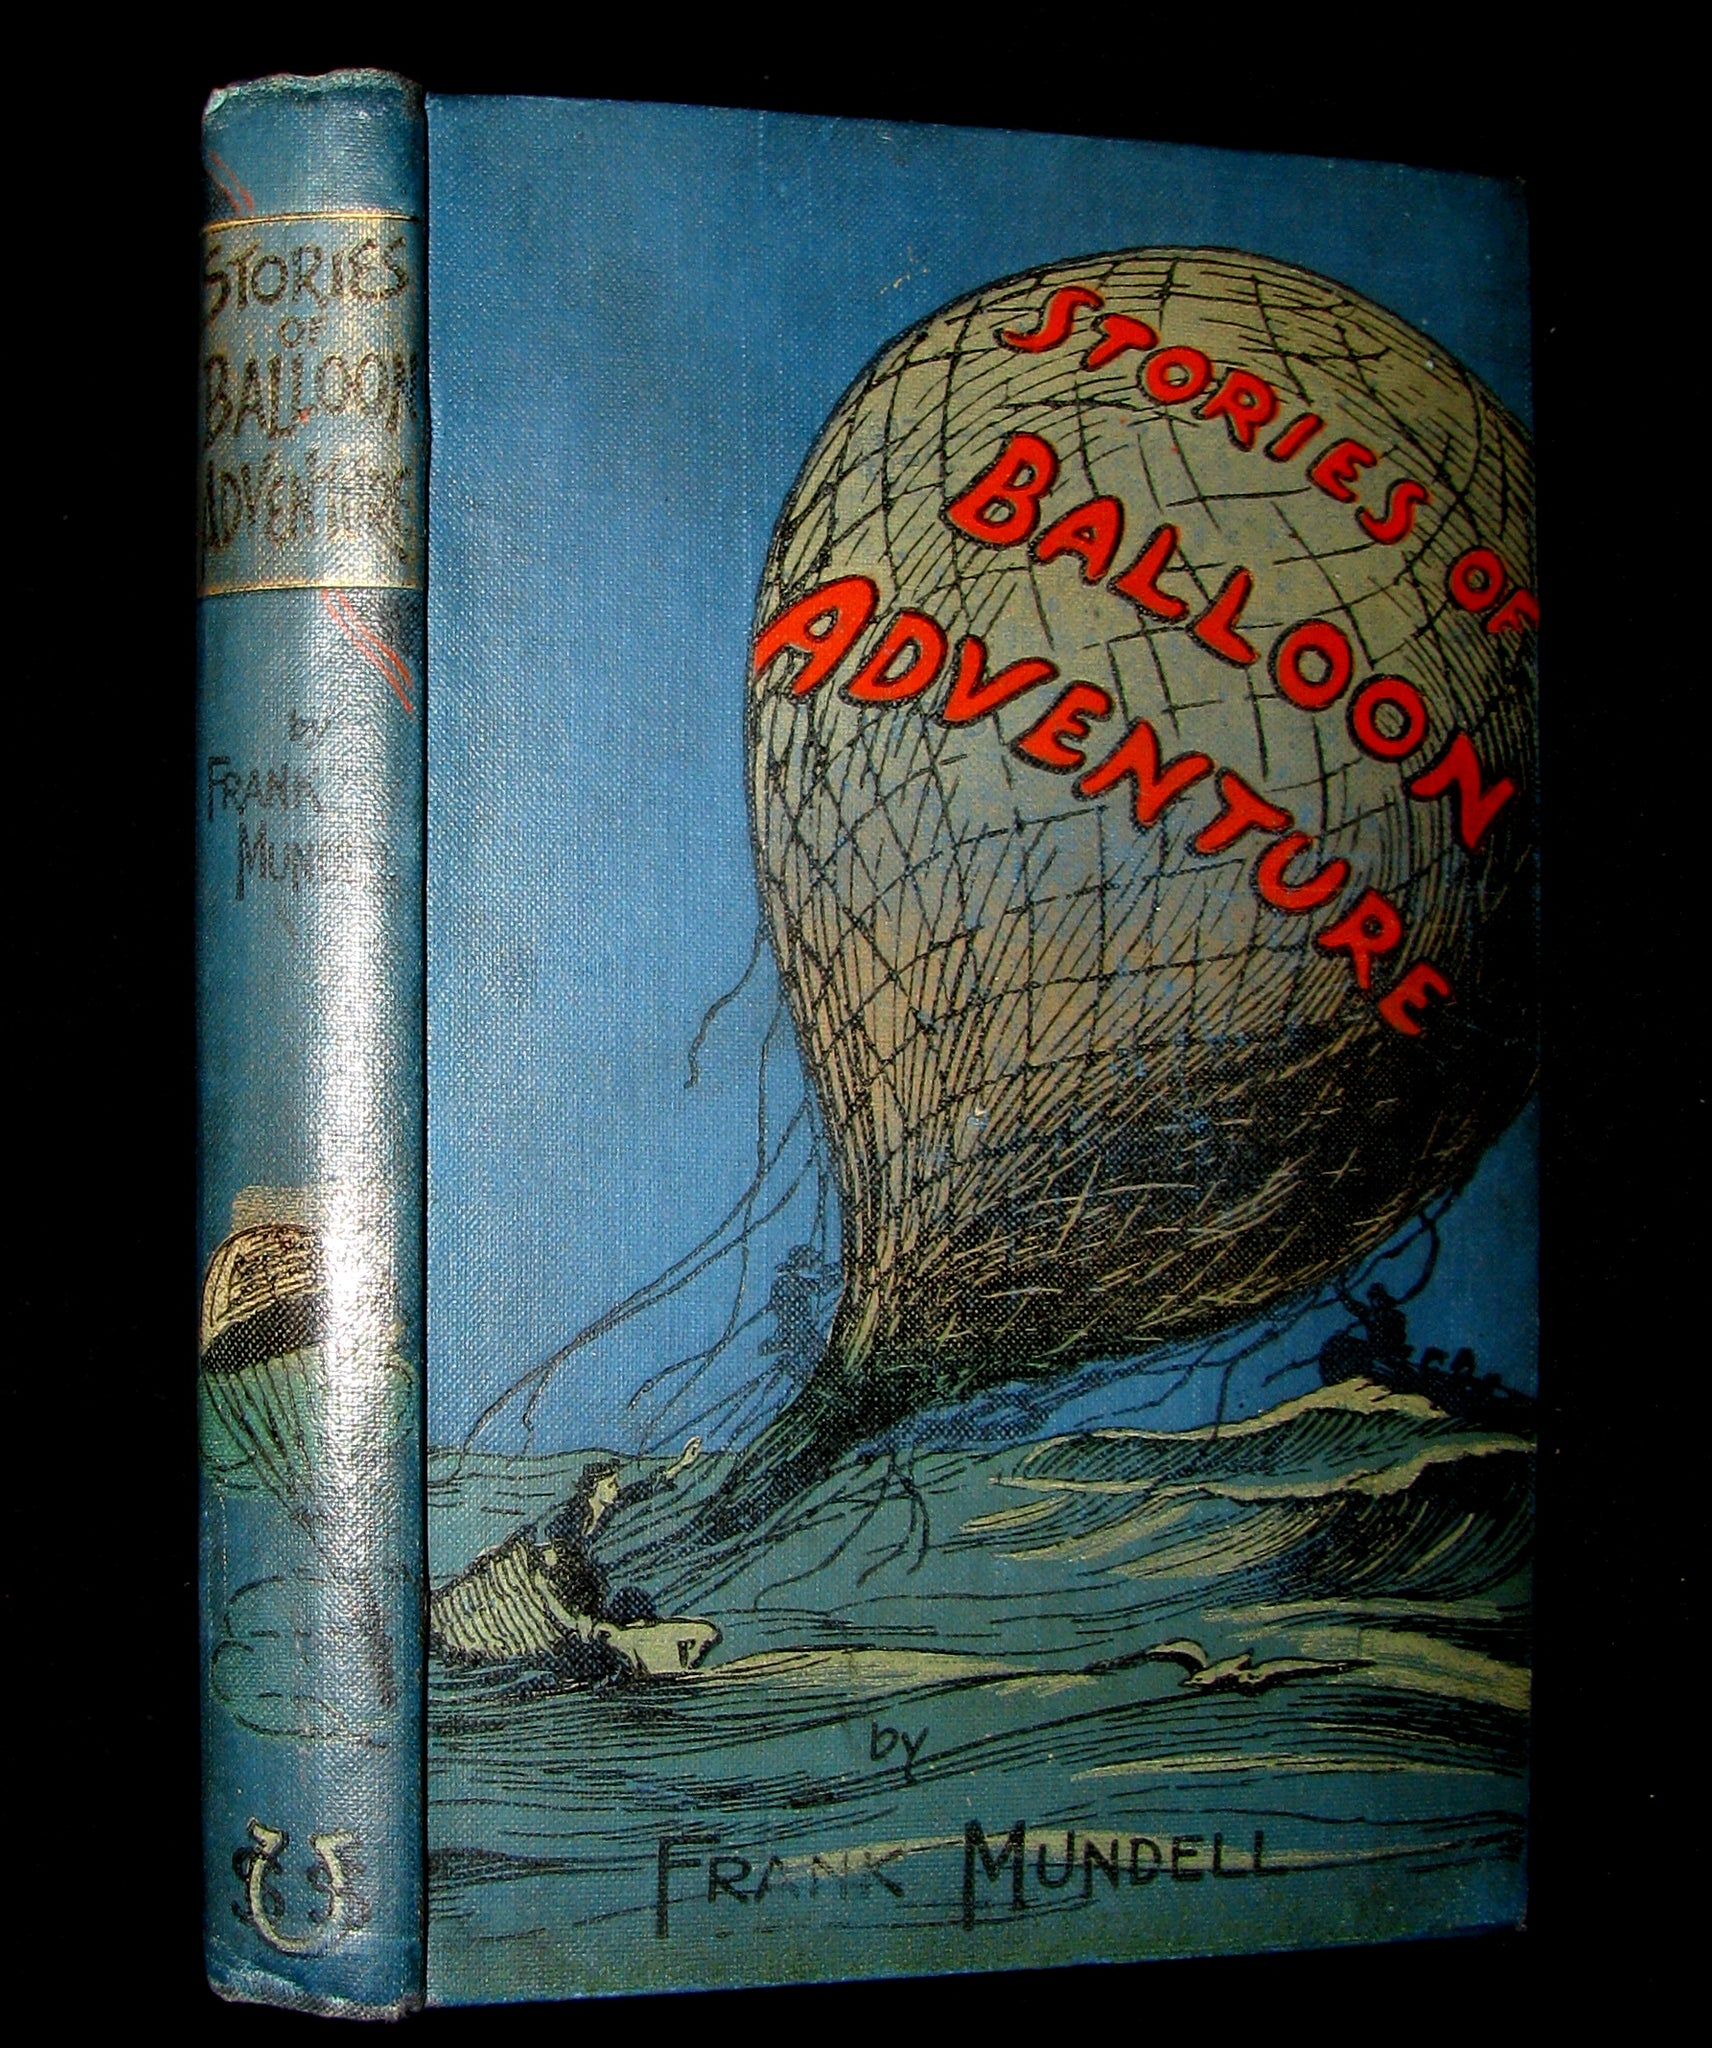 1899 Scarce Victorian Book -Stories of Balloon Adventure by  Frank Mundell